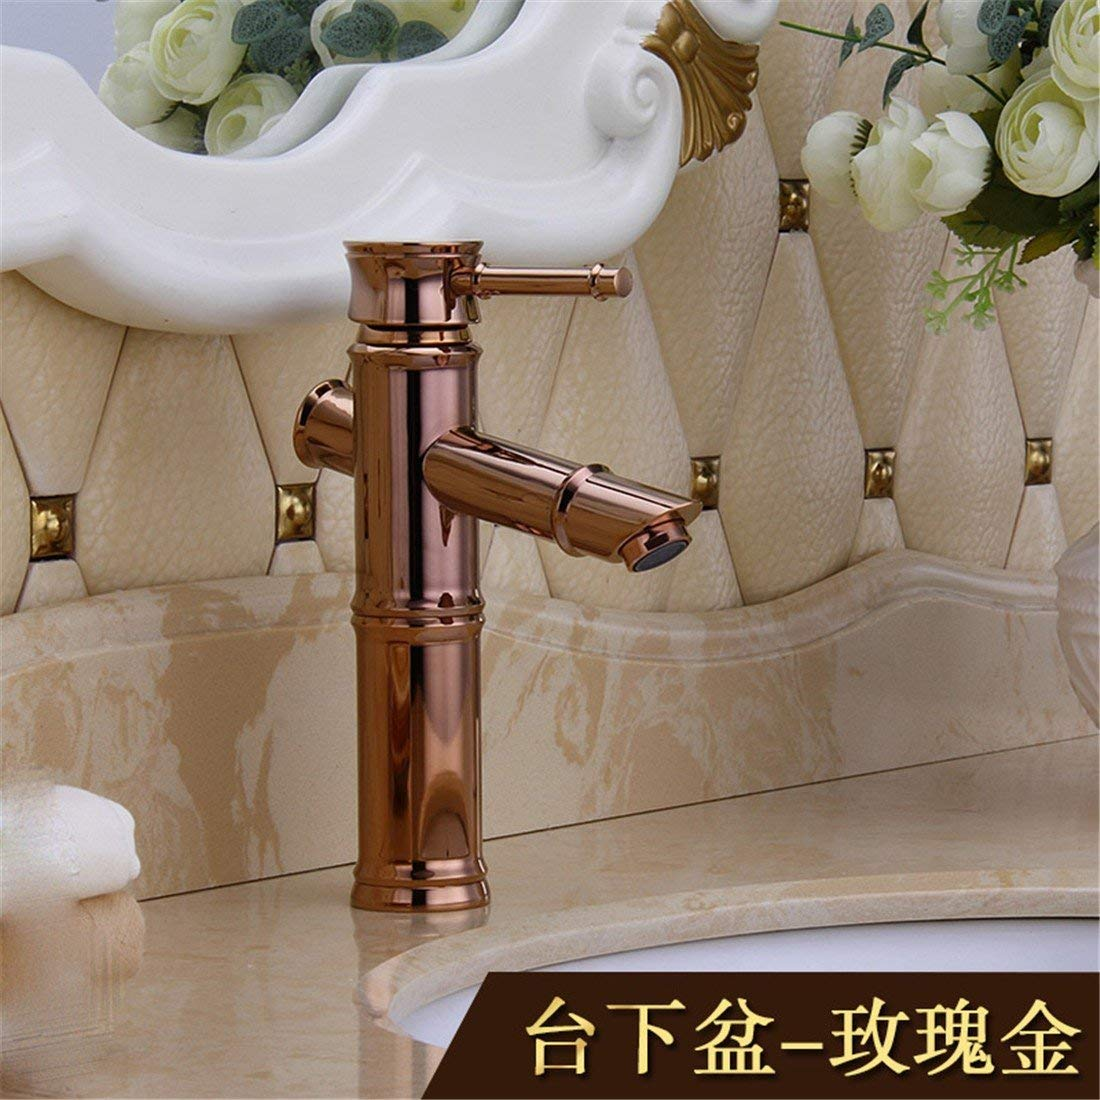 3 Oudan The golden Bamboo water saving taps full copper hot and cold single hole Washbasin washbasin continental check classic bamboo basin, Palm Antique Table Basin (color   2)